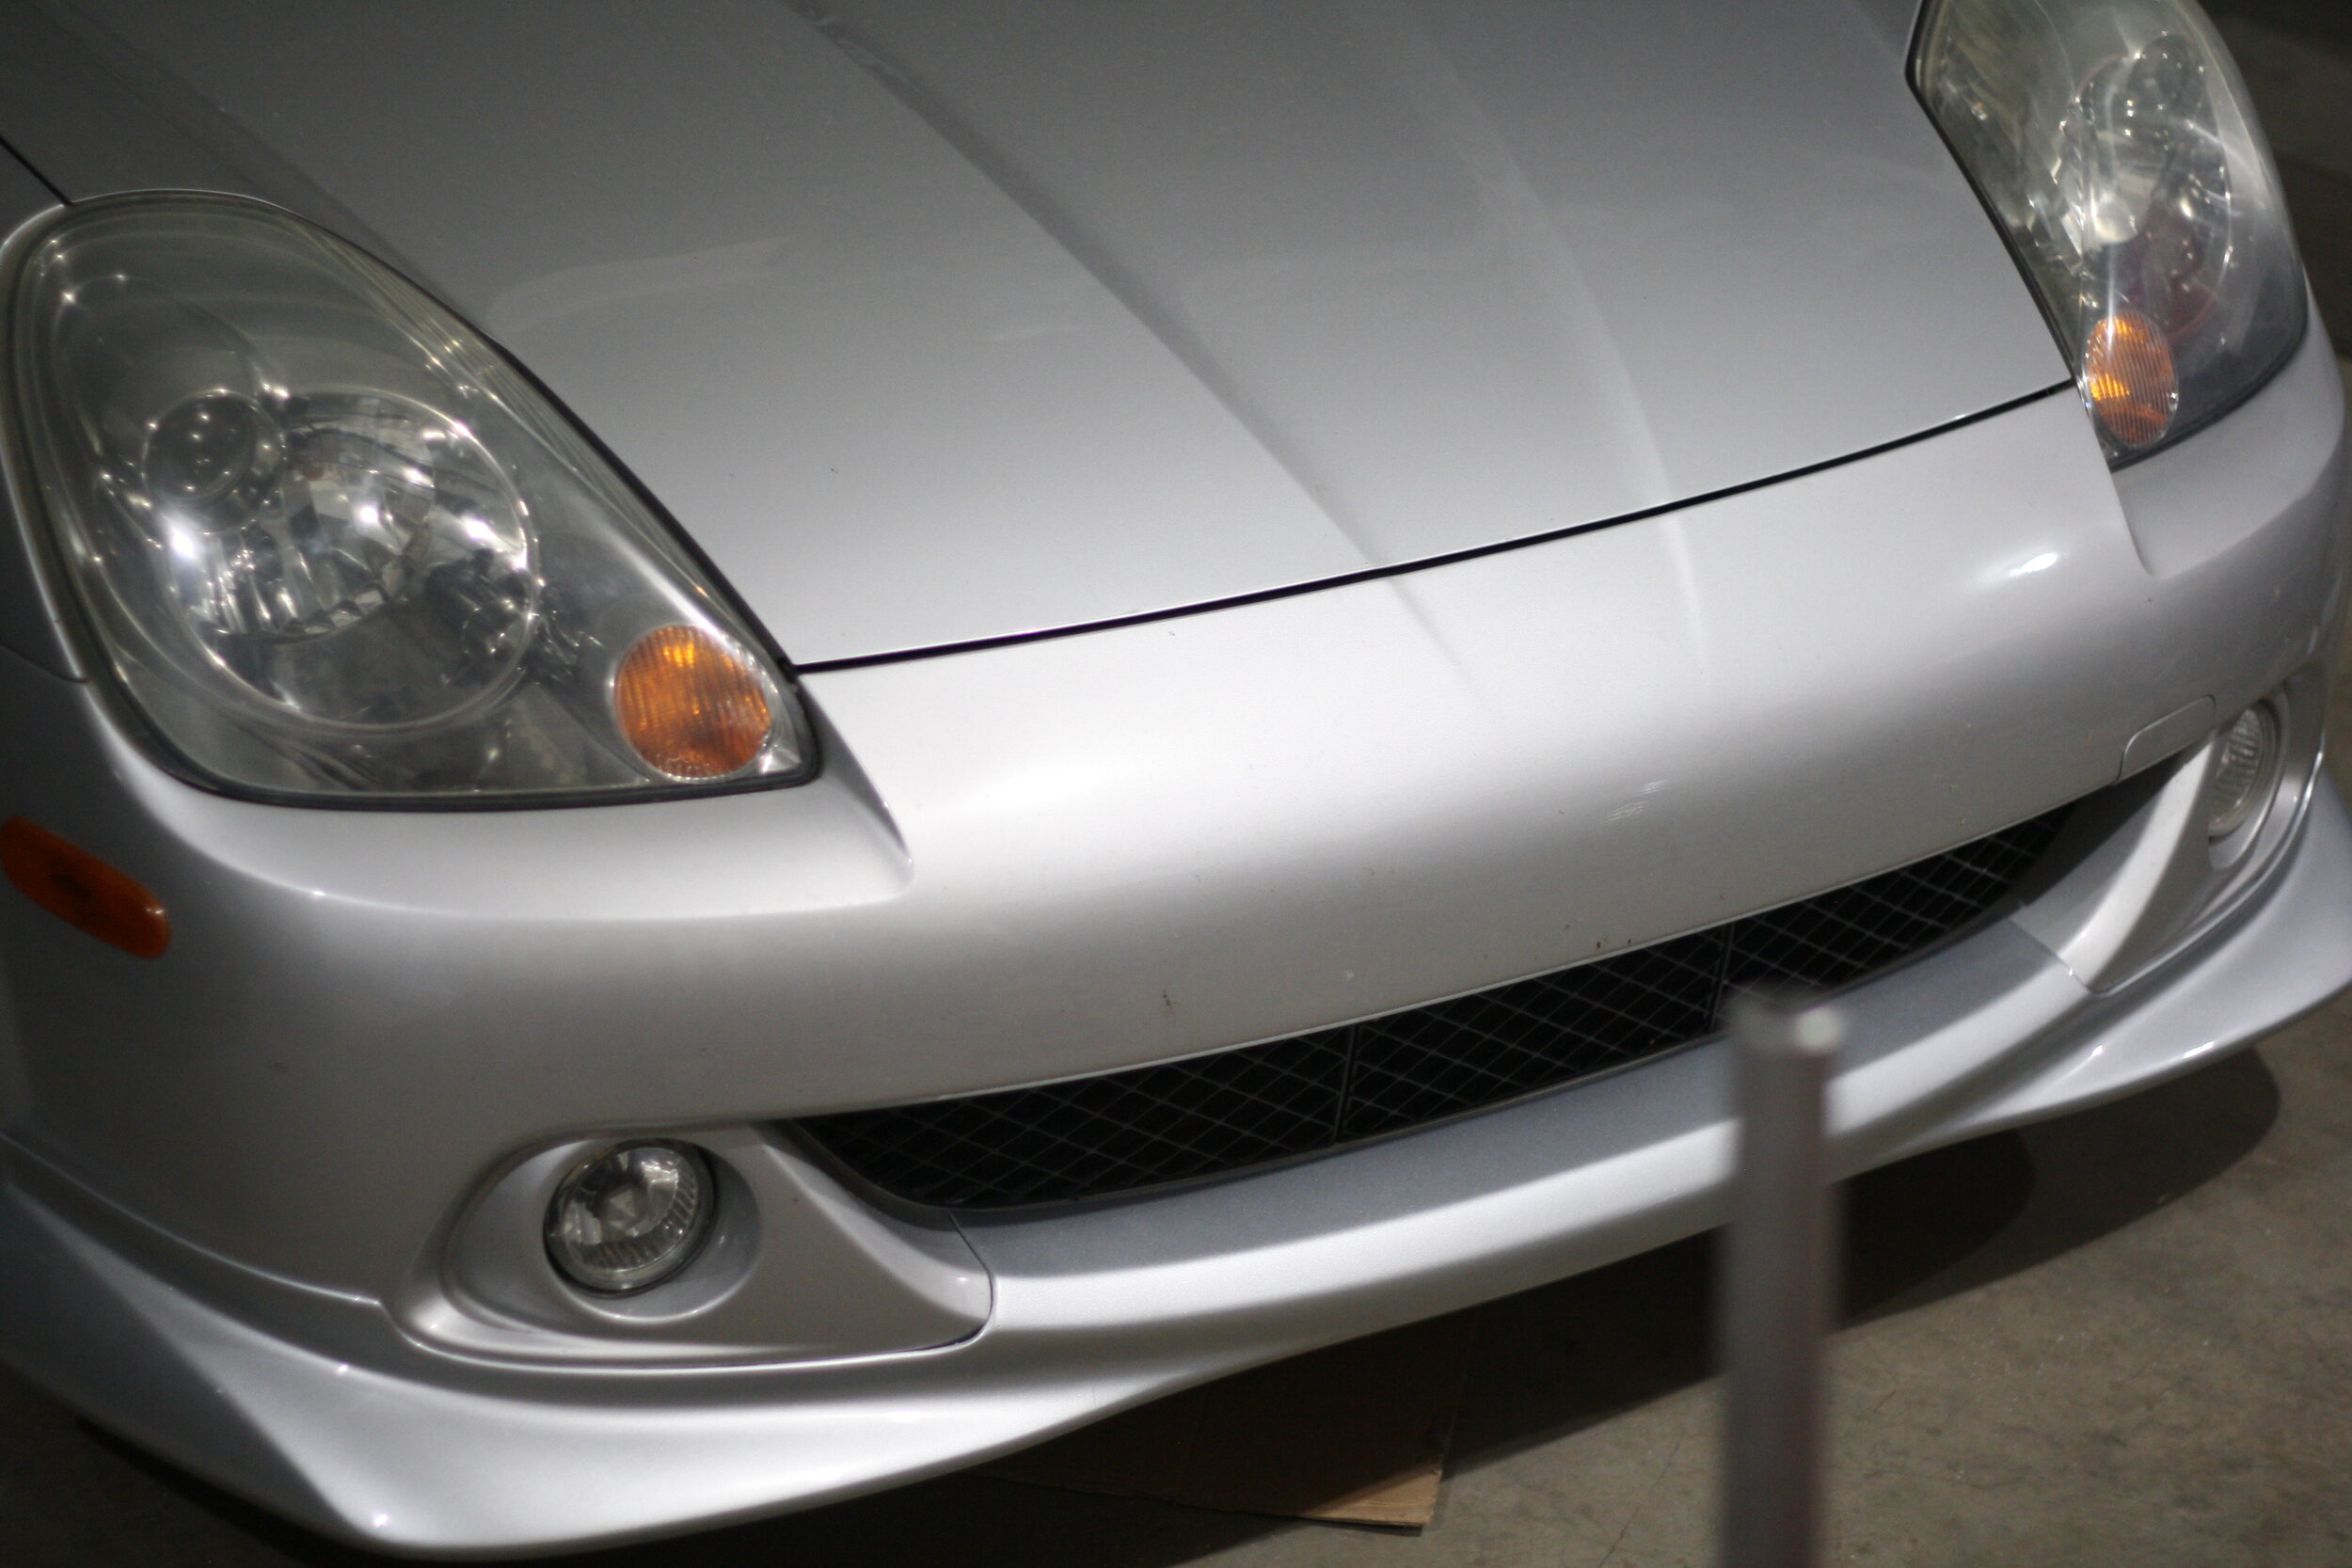 """Started to drive the car a lot more to get a good """"feel"""" for it and its dynamics. Just on spirited drives the car already feels like it wants to rotate more so than any other FF chassis Ive built. Lift = oversteer, steering input = oversteer, weight transfer = oversteer lol. Snap oversteer in this case I believe is just a myth as I have never had it happened while driving this car. Even with my lack of experience with MR and trying to shift the weight poorly it doesn't snap. Go drive an s2k or sw20 and shift the weight wrong, and yeah those will snap hard with a small chance of saving it! This ones easy to catch, not as easy as a miata, but will need to react much faster.  I have a lot of learning to do and habits to change driving and racing FF my whole life. What better way to do that? Hit up a local auto x. So that's what I did."""